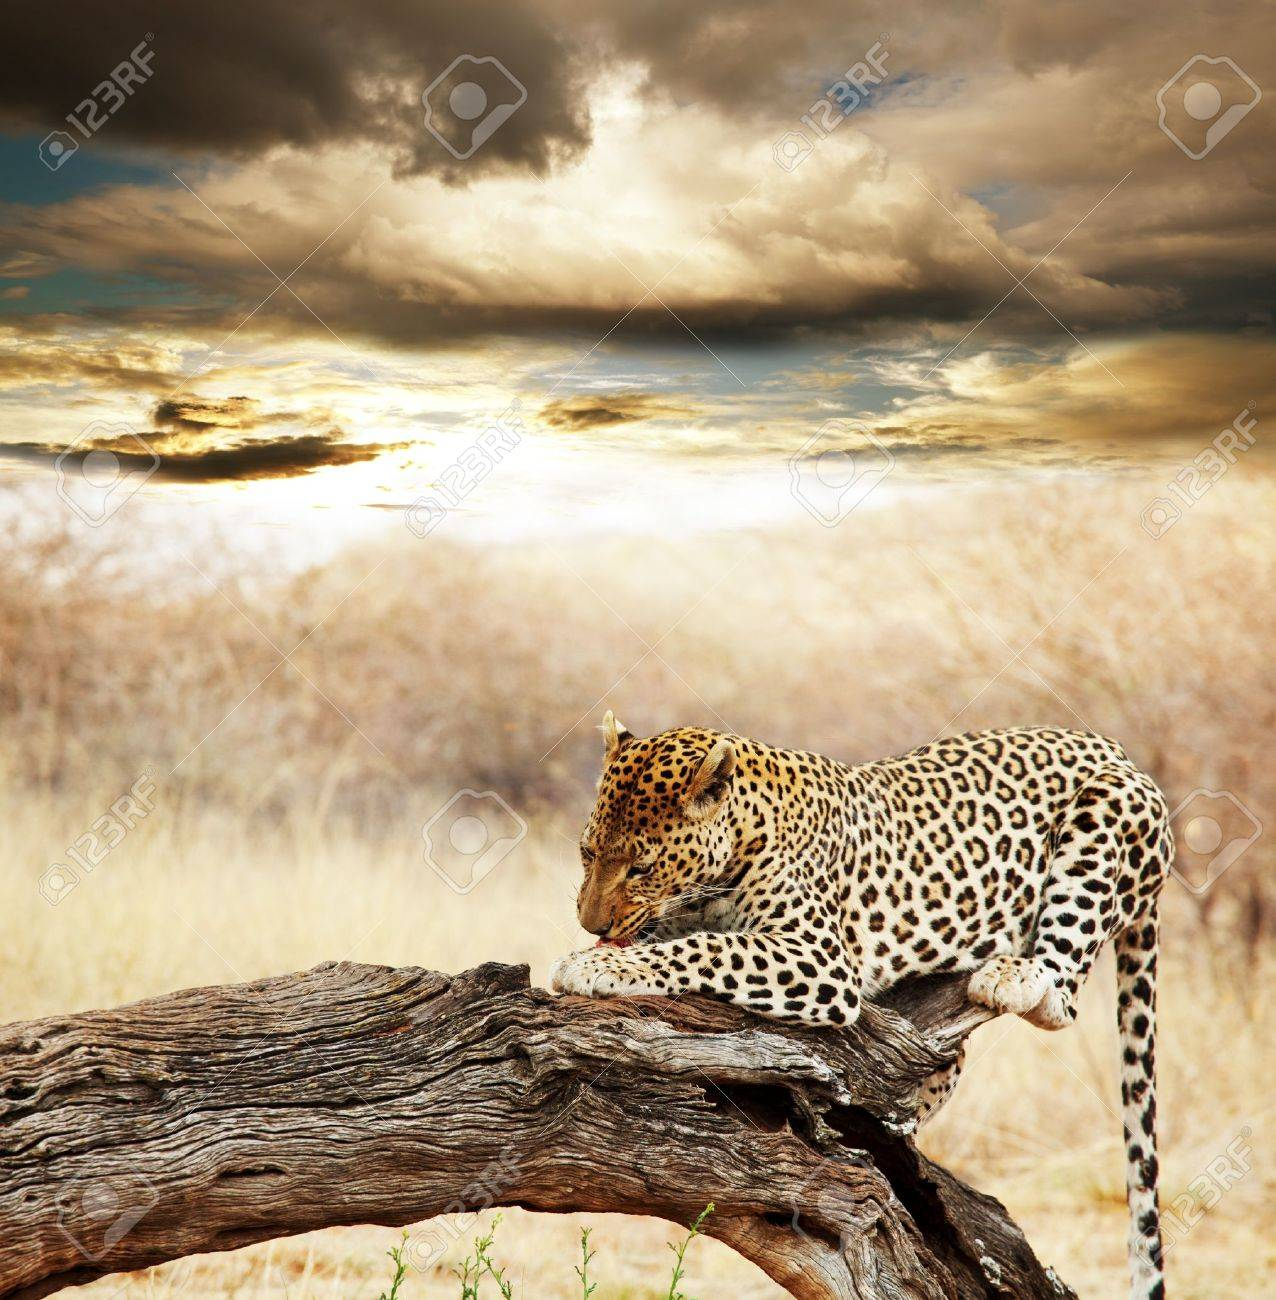 Wild cats collection Stock Photo - 11260696